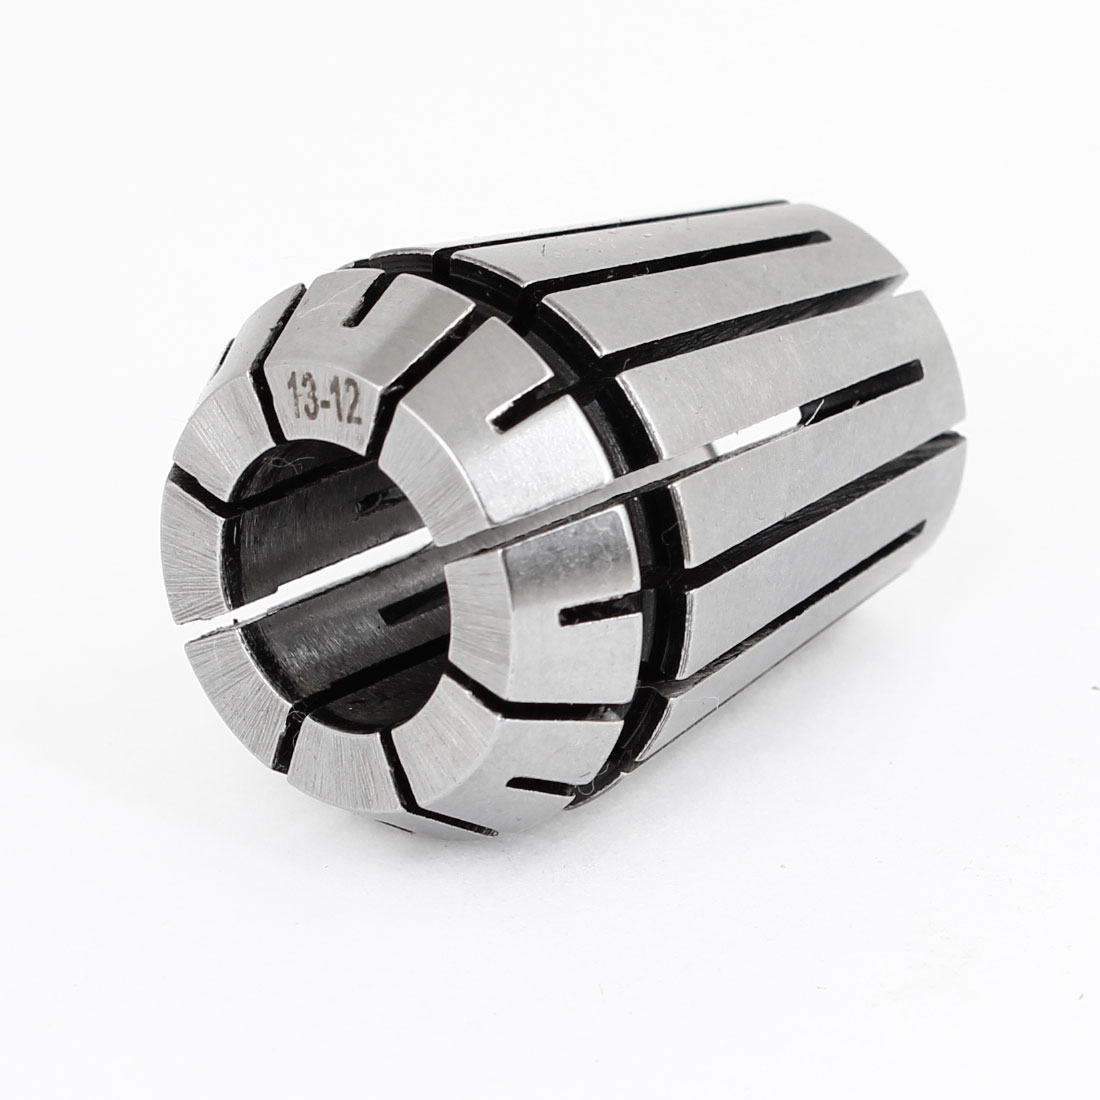 Clamping Range 13-12mm ER25 Precision Spring Collet Tapping Part